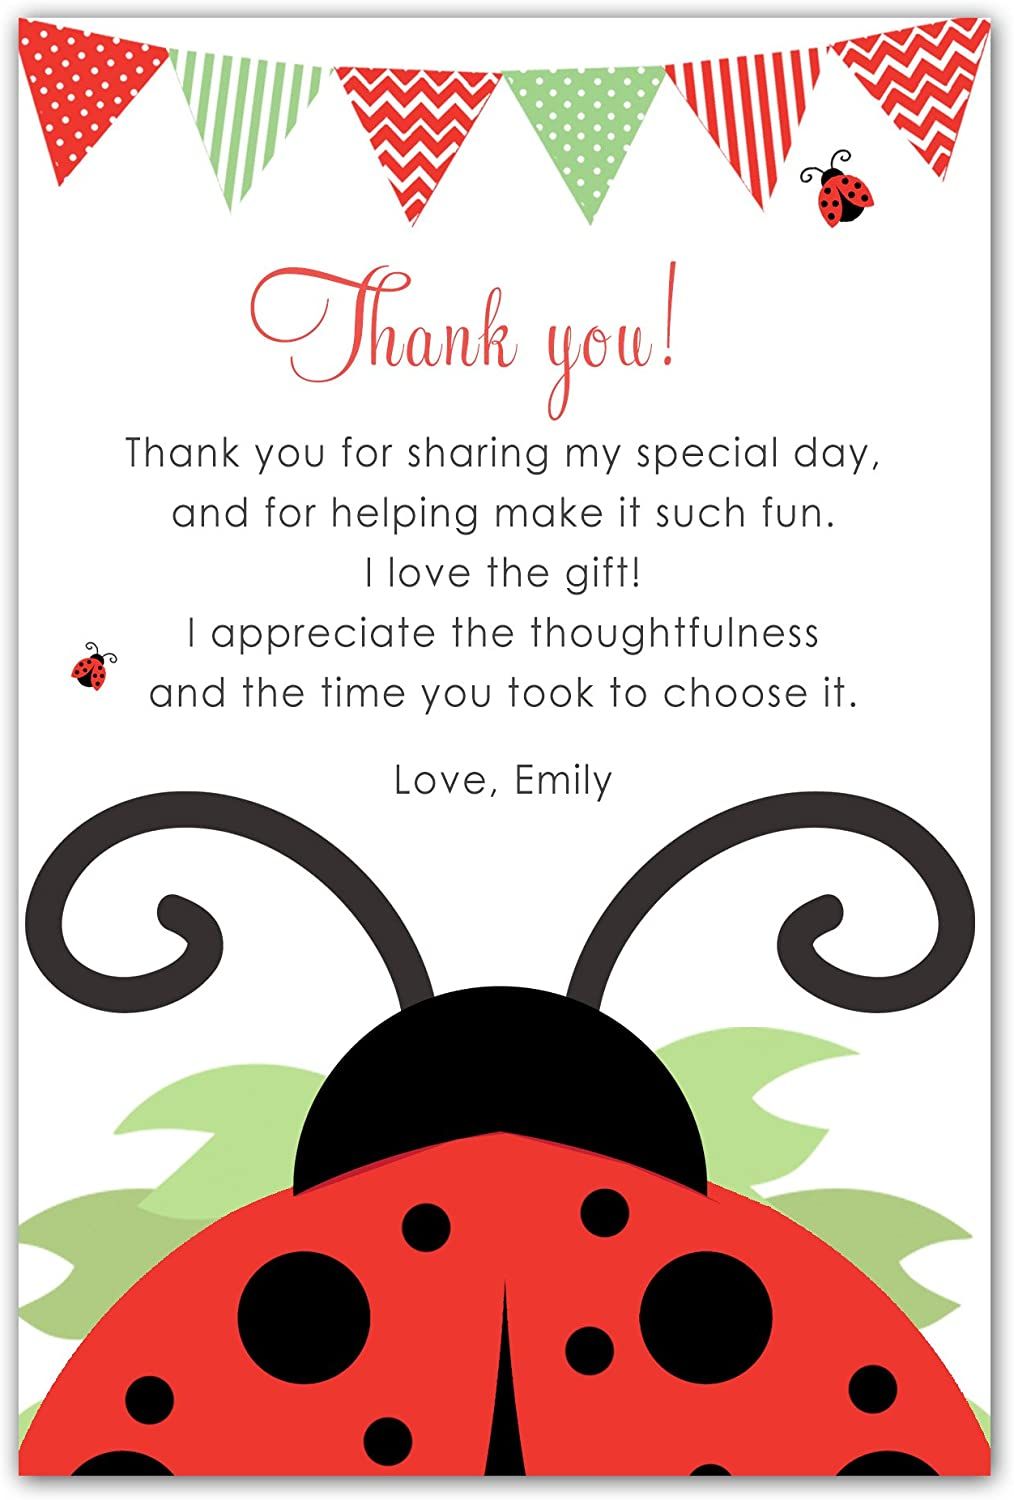 100 Thank You Cards Notes Personalised Ladybug Girl Birthday Baby Shower Red + White Envelopes